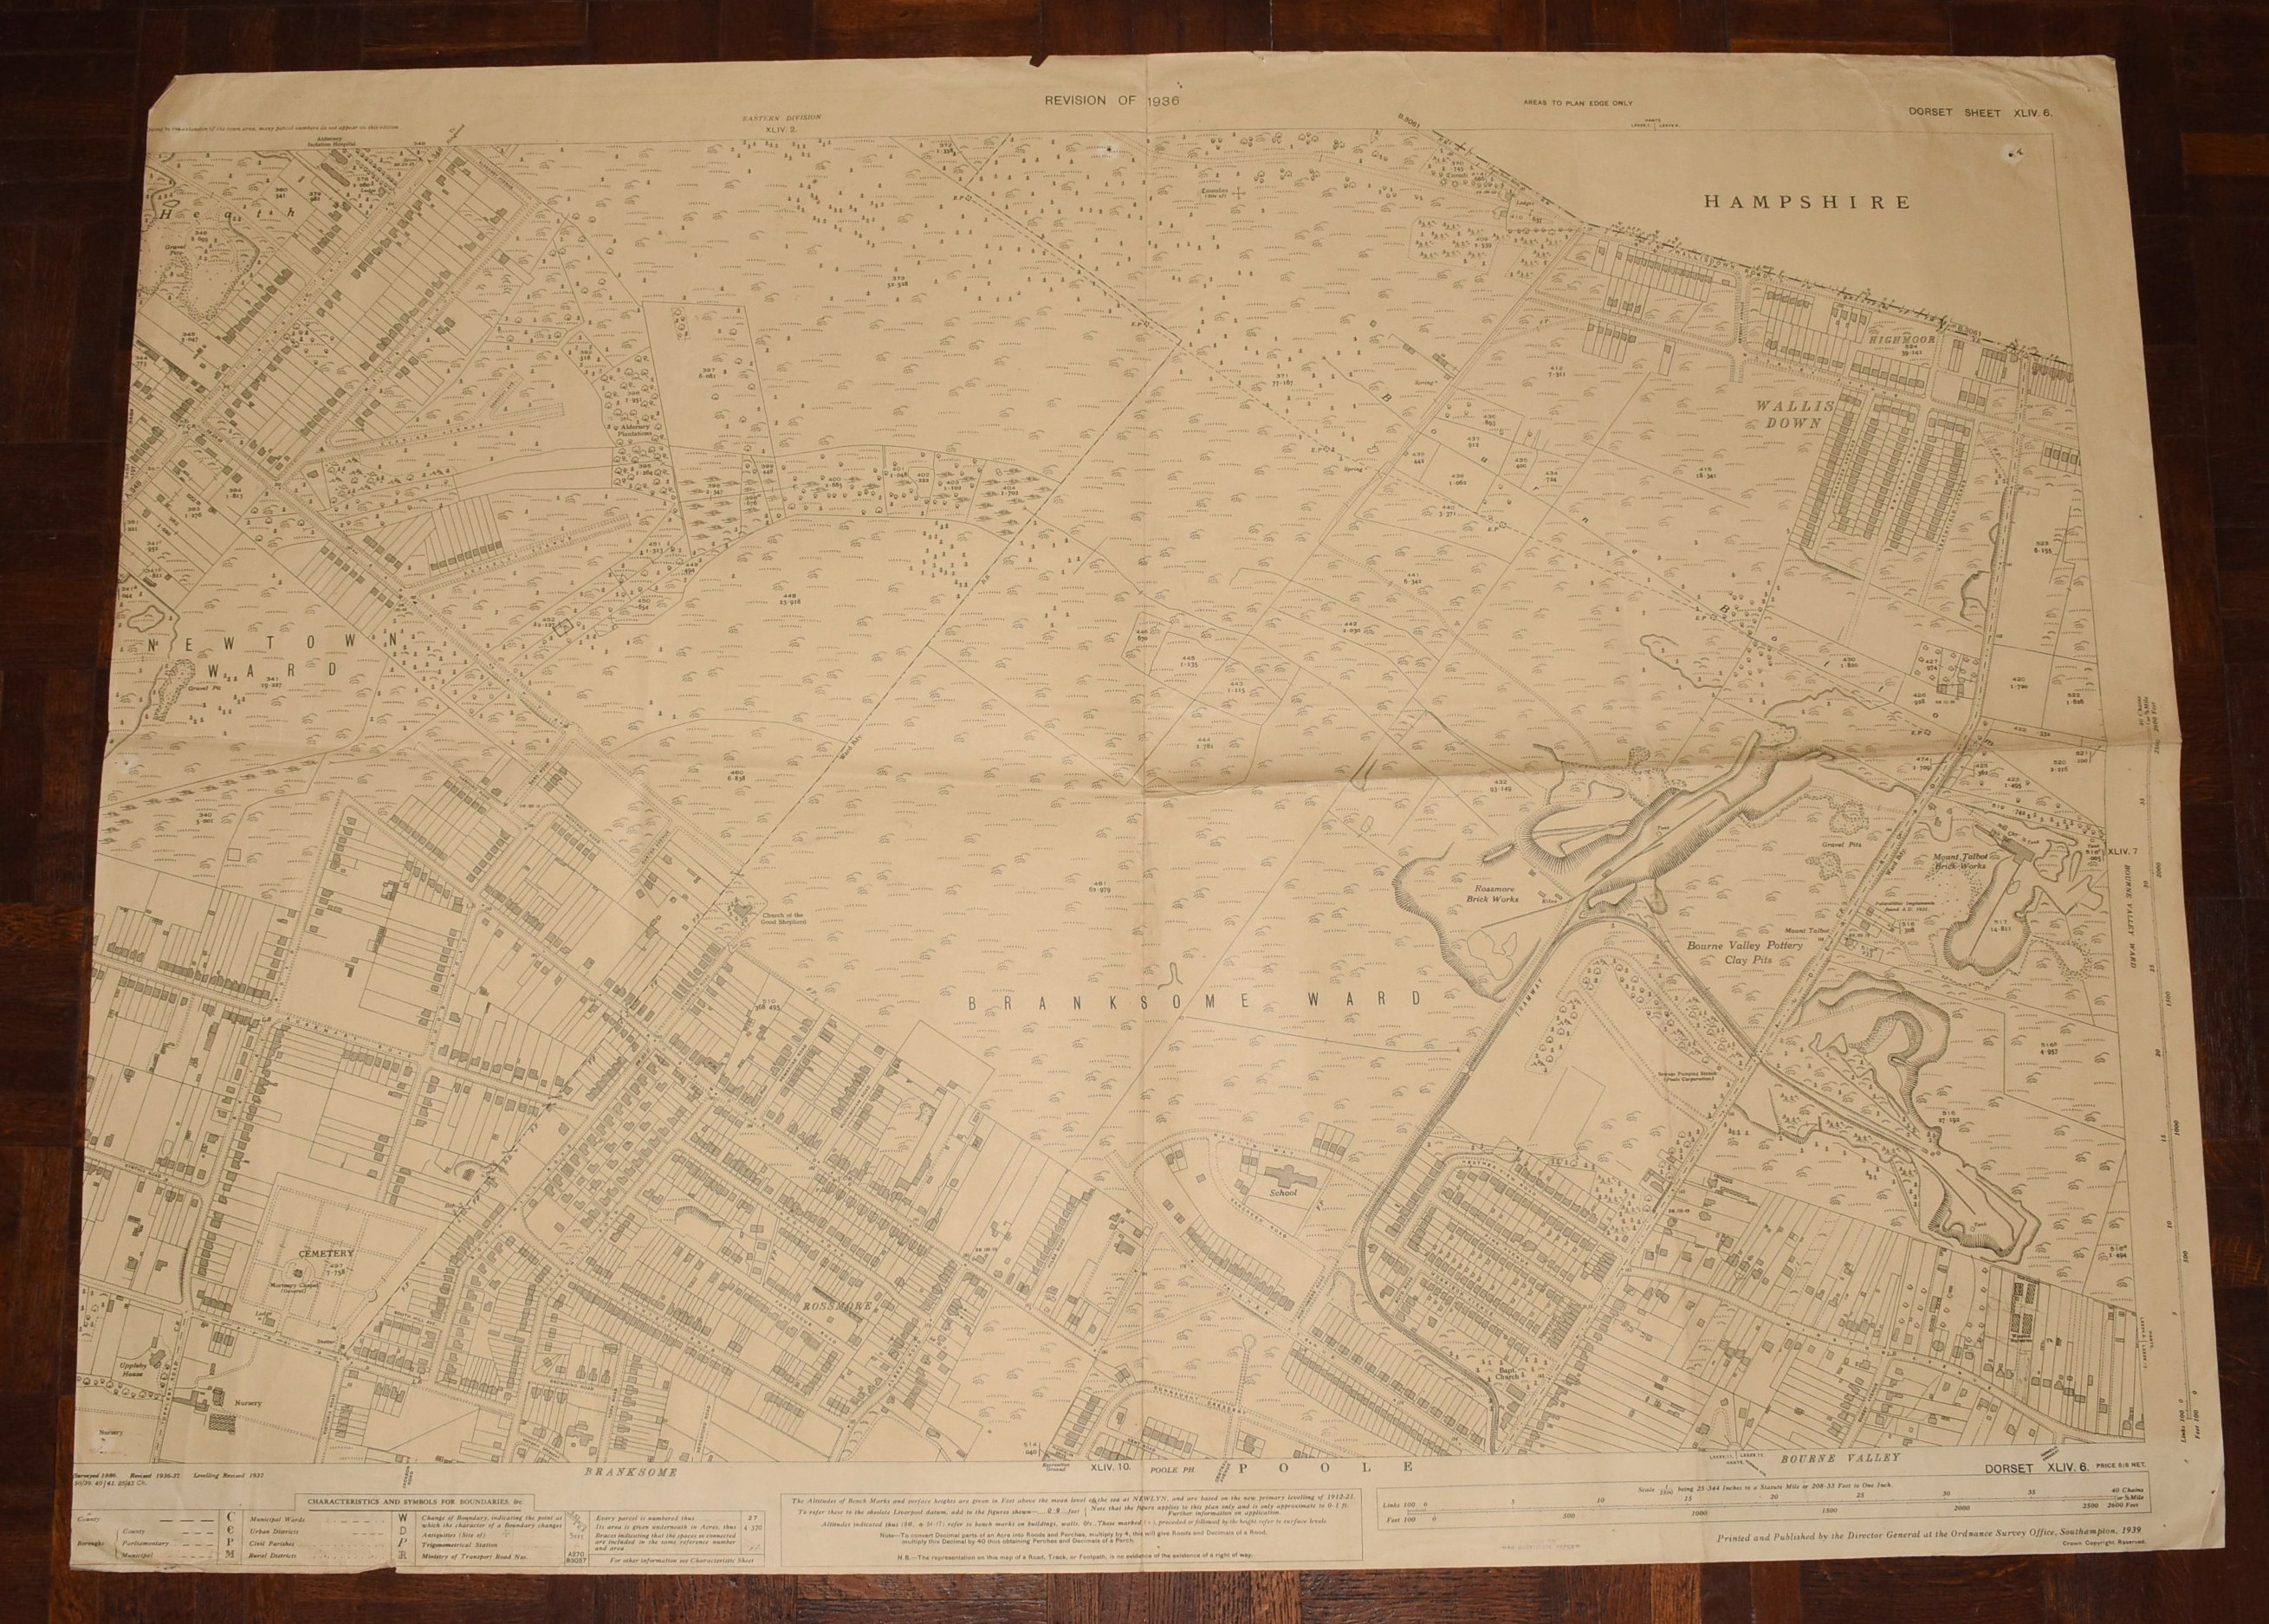 Image for LARGE Ordnance Survey MAP Sheet XLIV.6 Trinidad Estate Branksome - Bourne Valley Poole DORSET Scale 1:2500 or 25.344 inches to 1 mile.